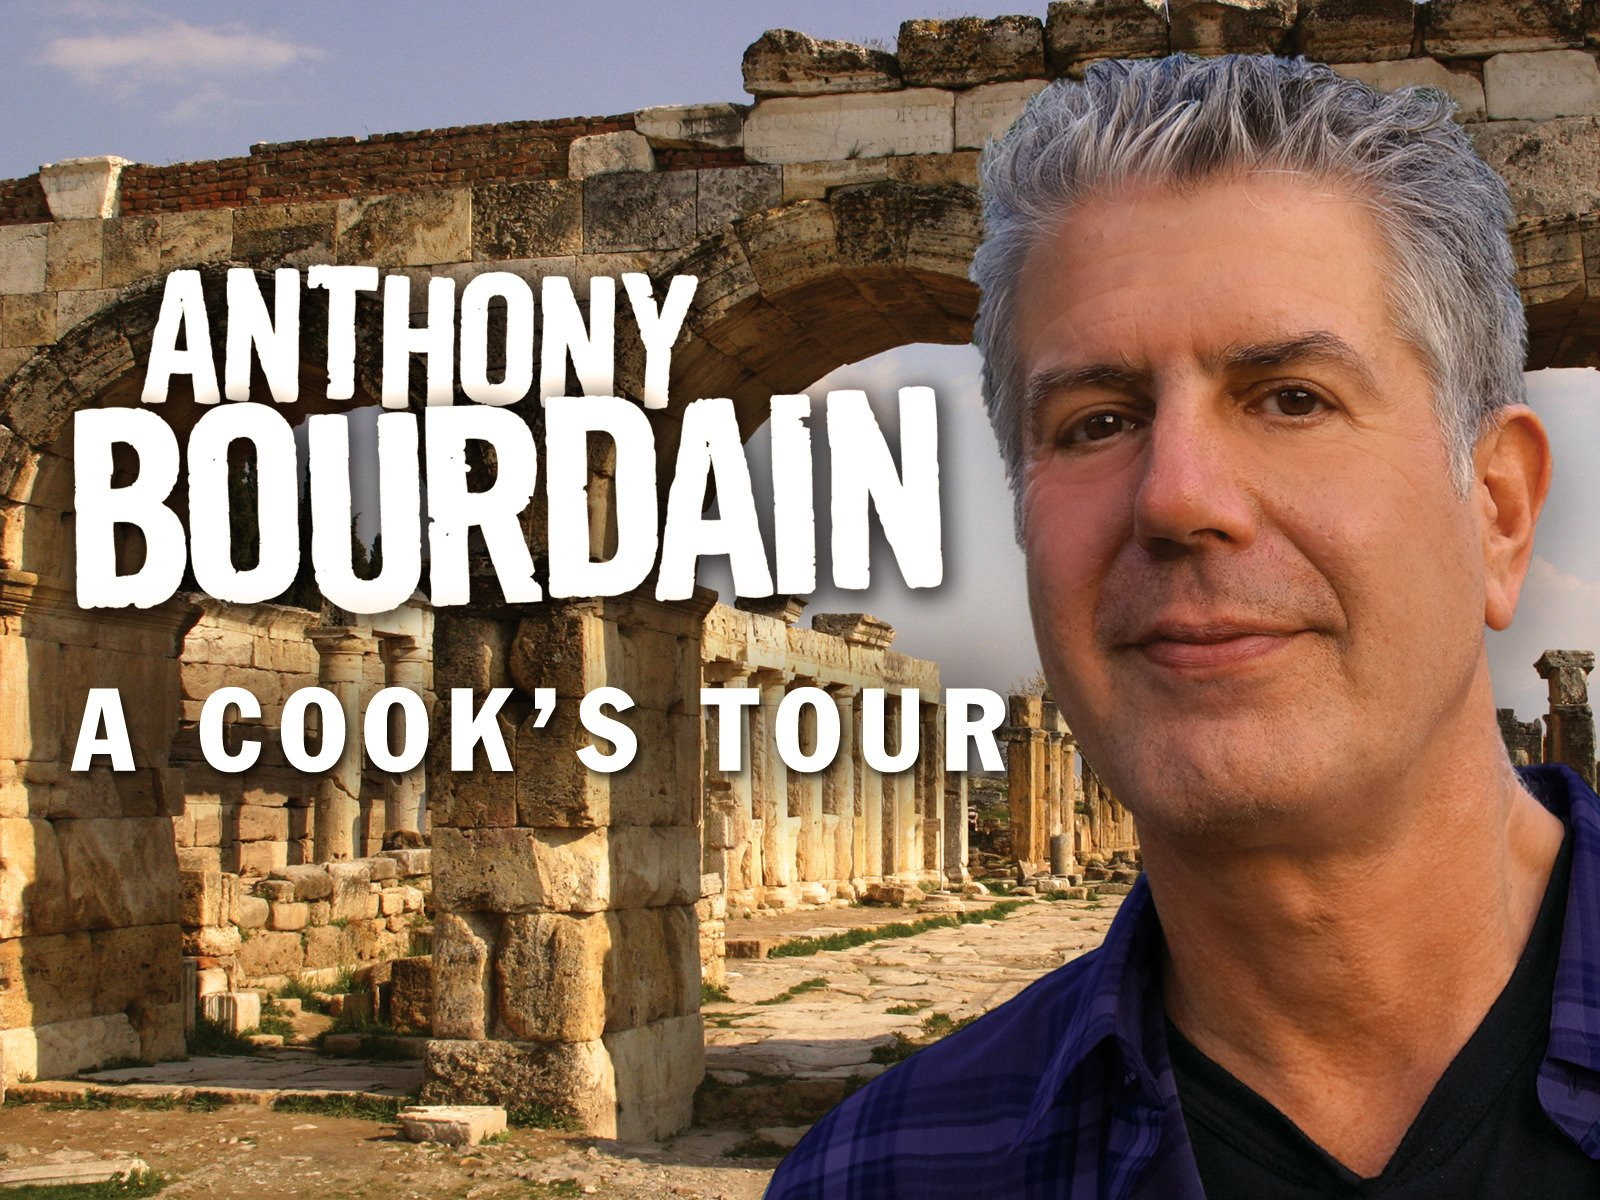 anthony bourdain s a cook s tour anthony bourdain